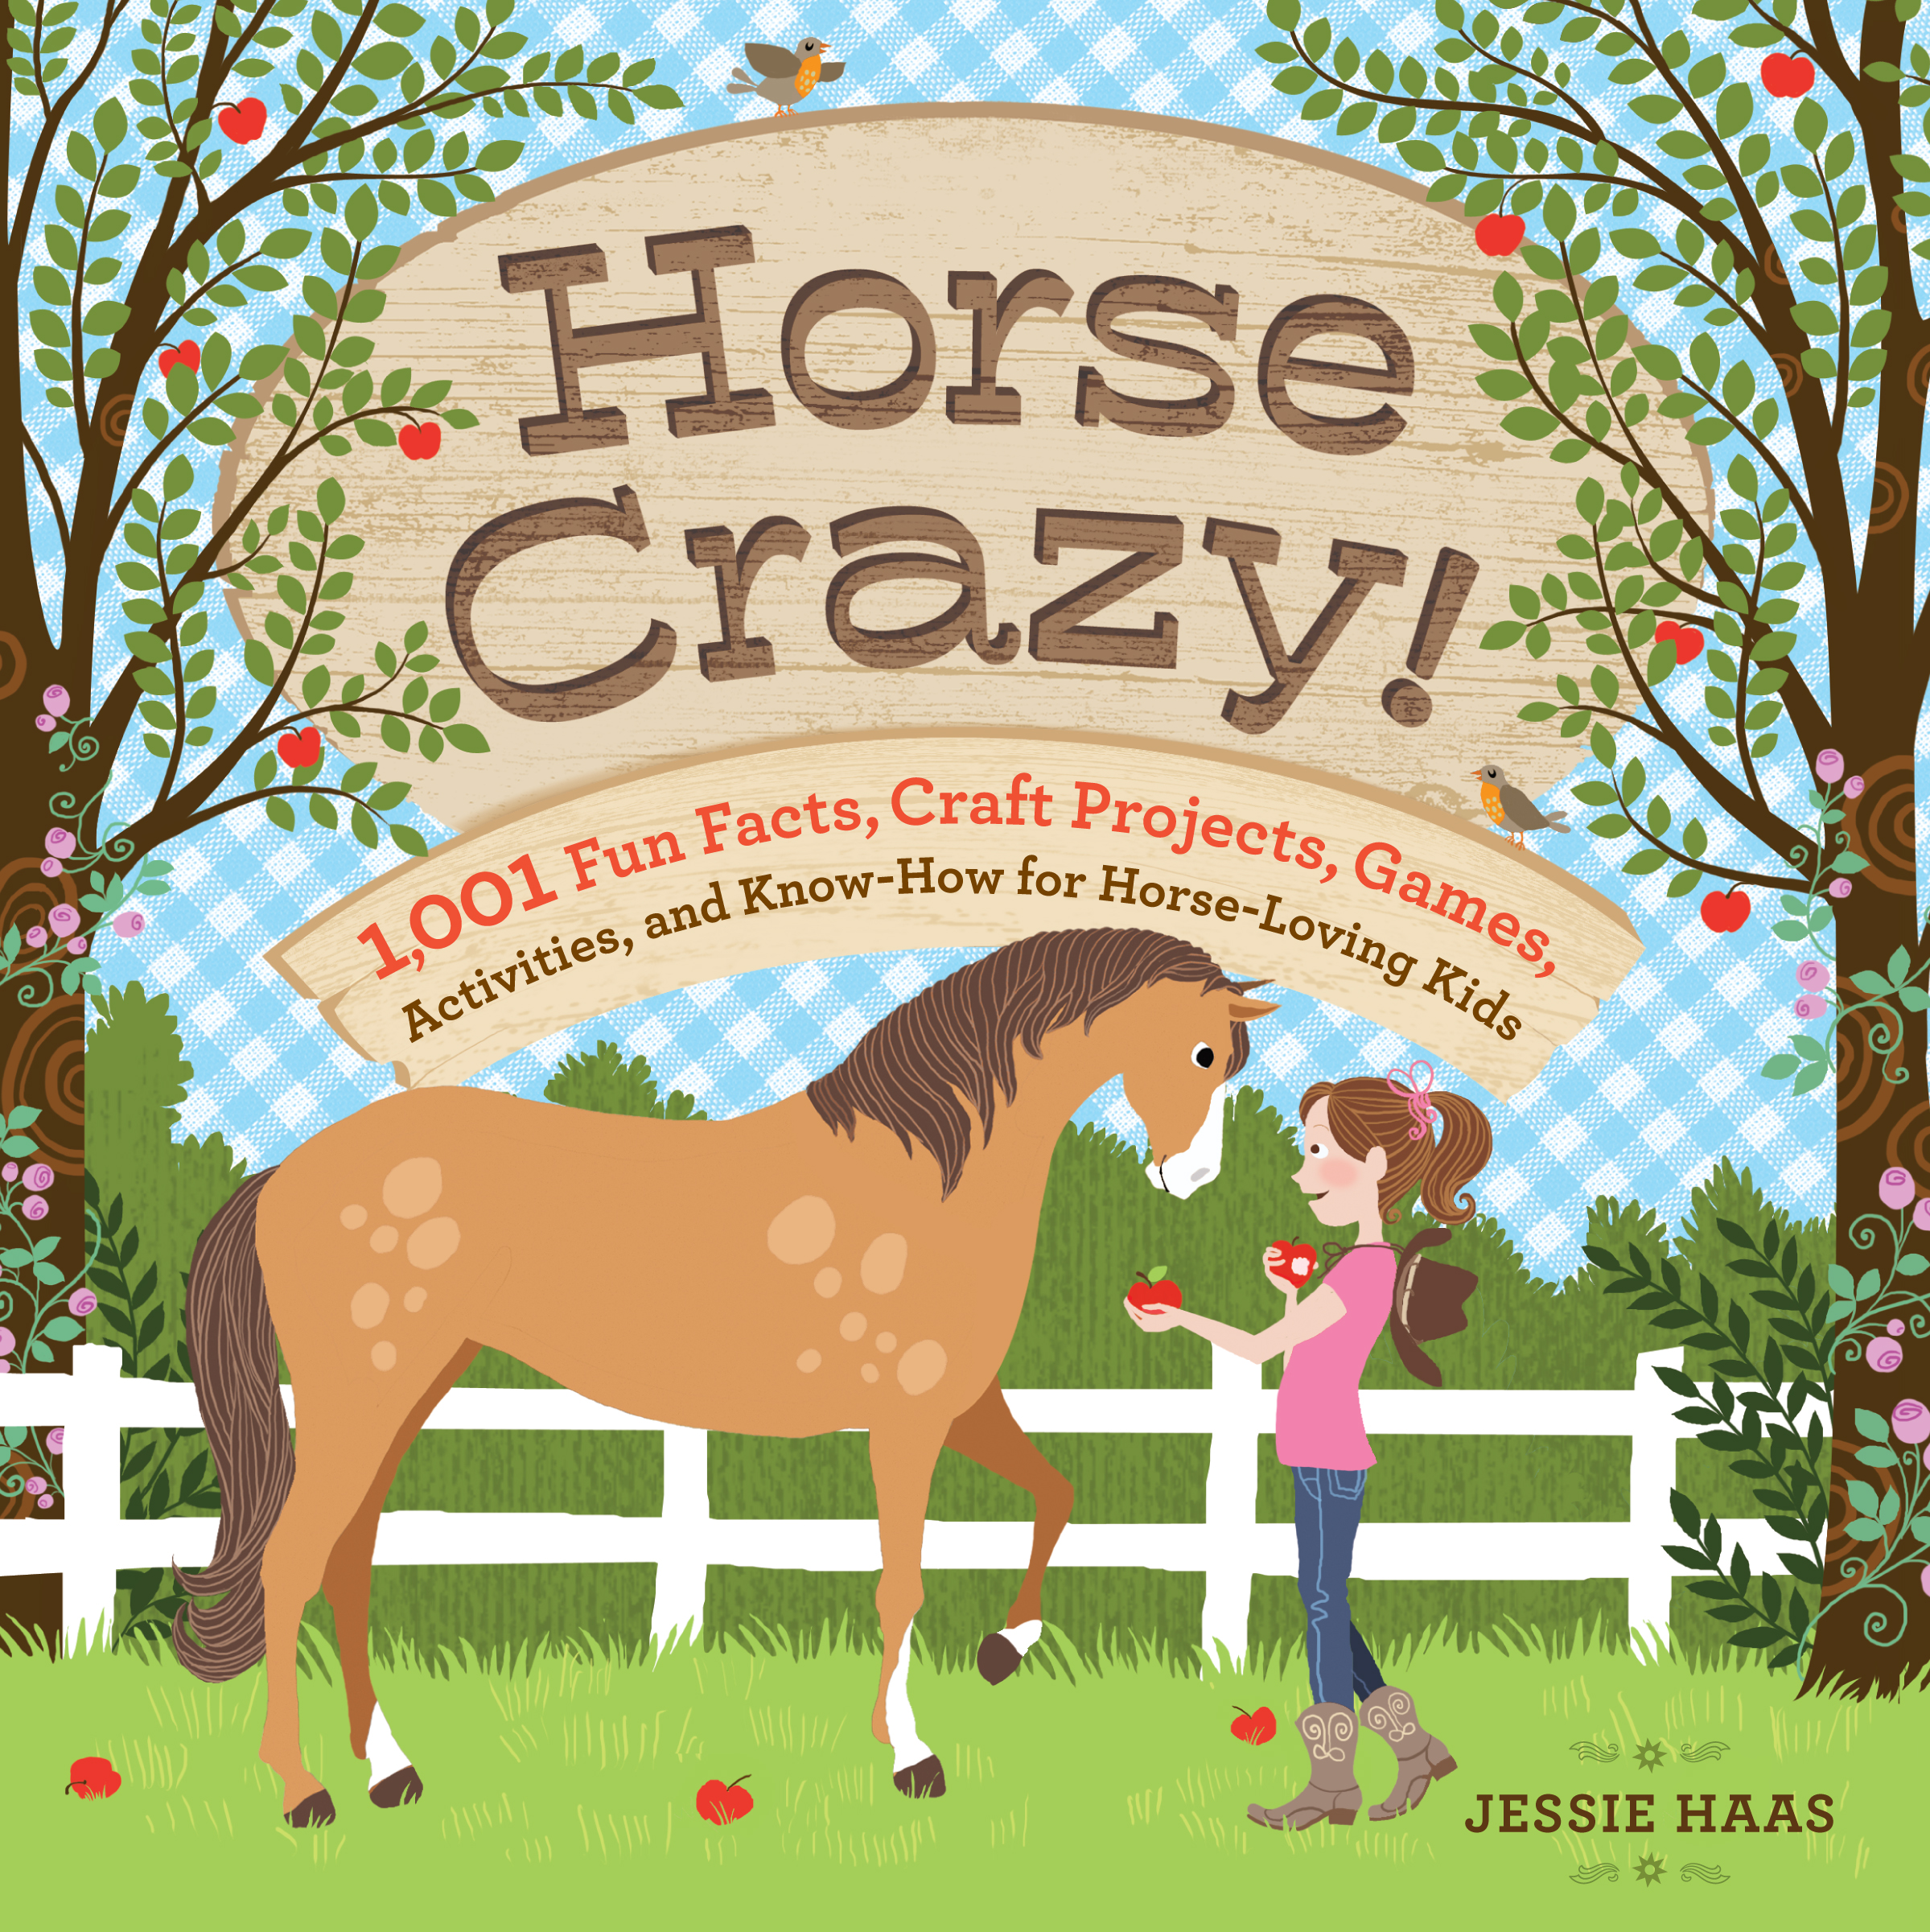 Horse Crazy! Fun Facts, Ideas, Activities, Projects, Games, and Know-How for Horse-Loving Kids - Jessie Haas